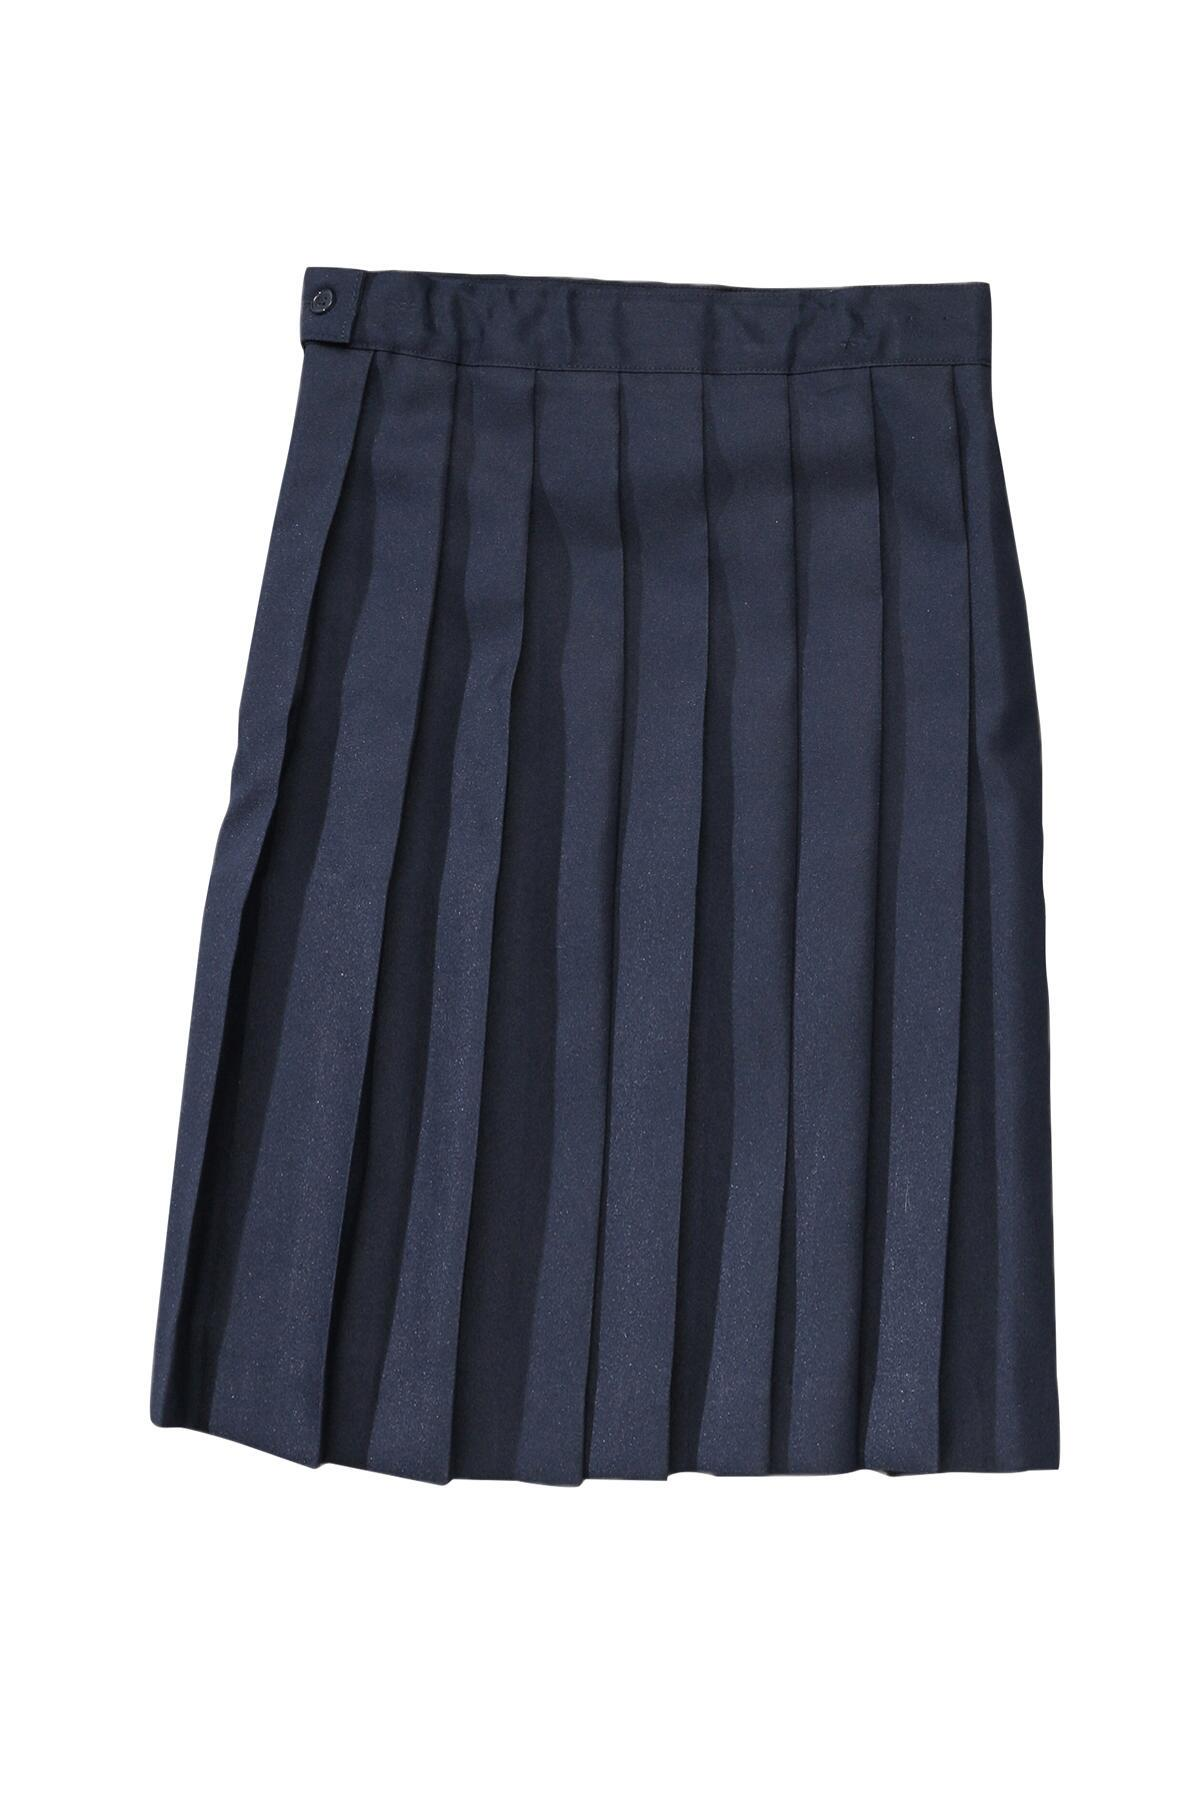 99c2edd40 Below The Knee Girl's Pleated Uniform Skirt, Size 4-7| French Toast - French  Toast